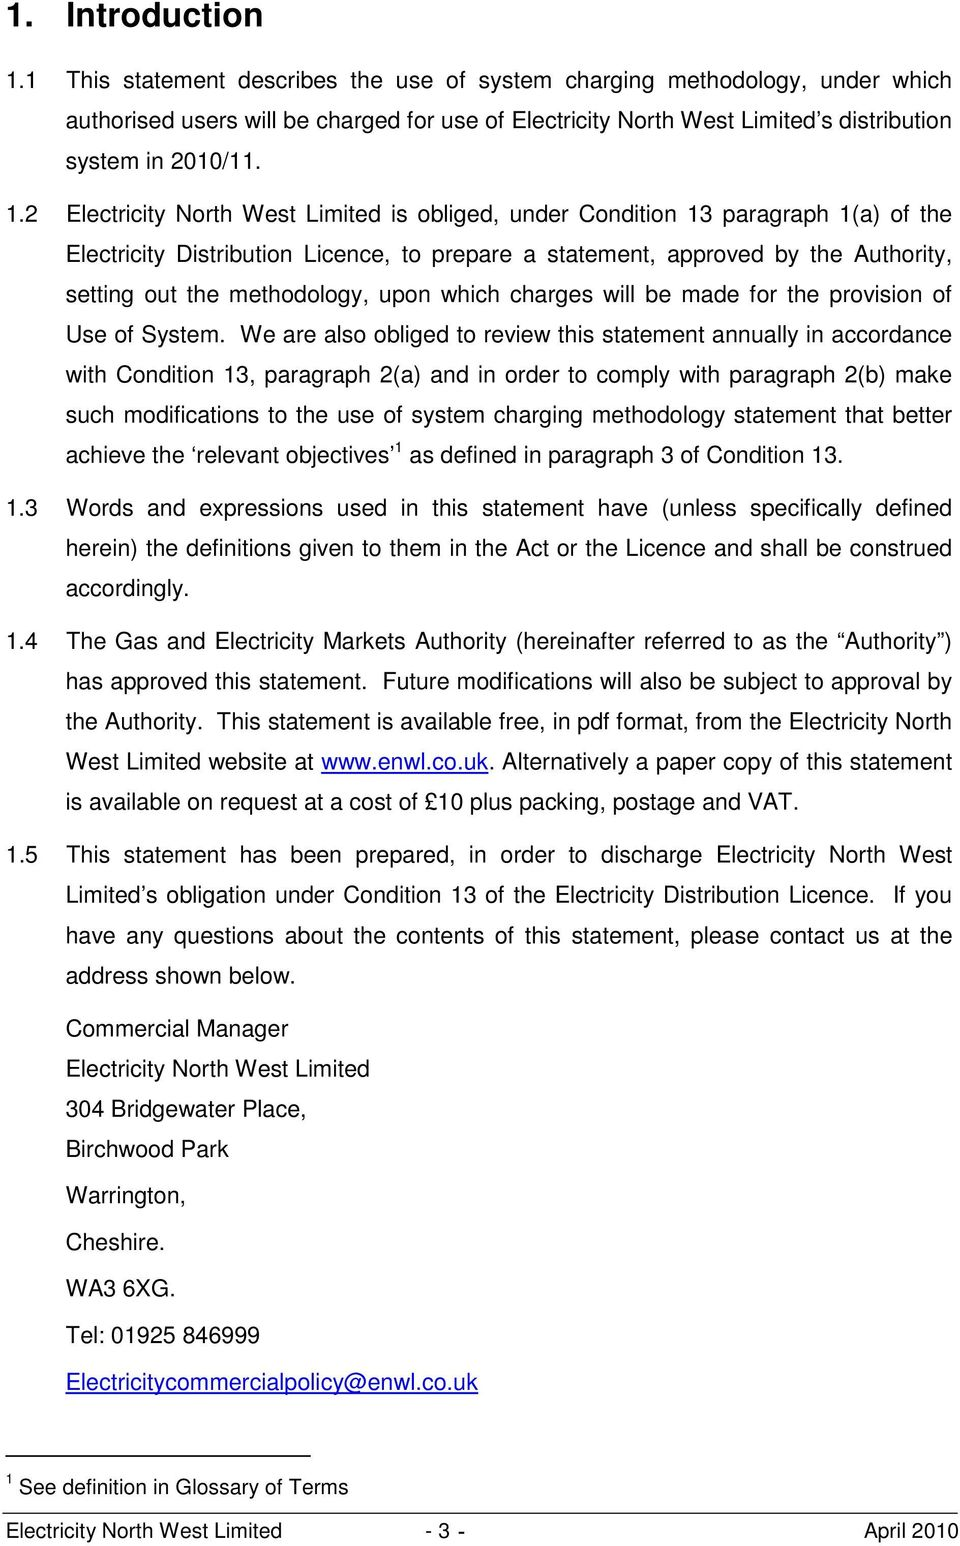 2 Electricity North West Limited is obliged, under Condition 13 paragraph 1(a) of the Electricity Distribution Licence, to prepare a statement, approved by the Authority, setting out the methodology,